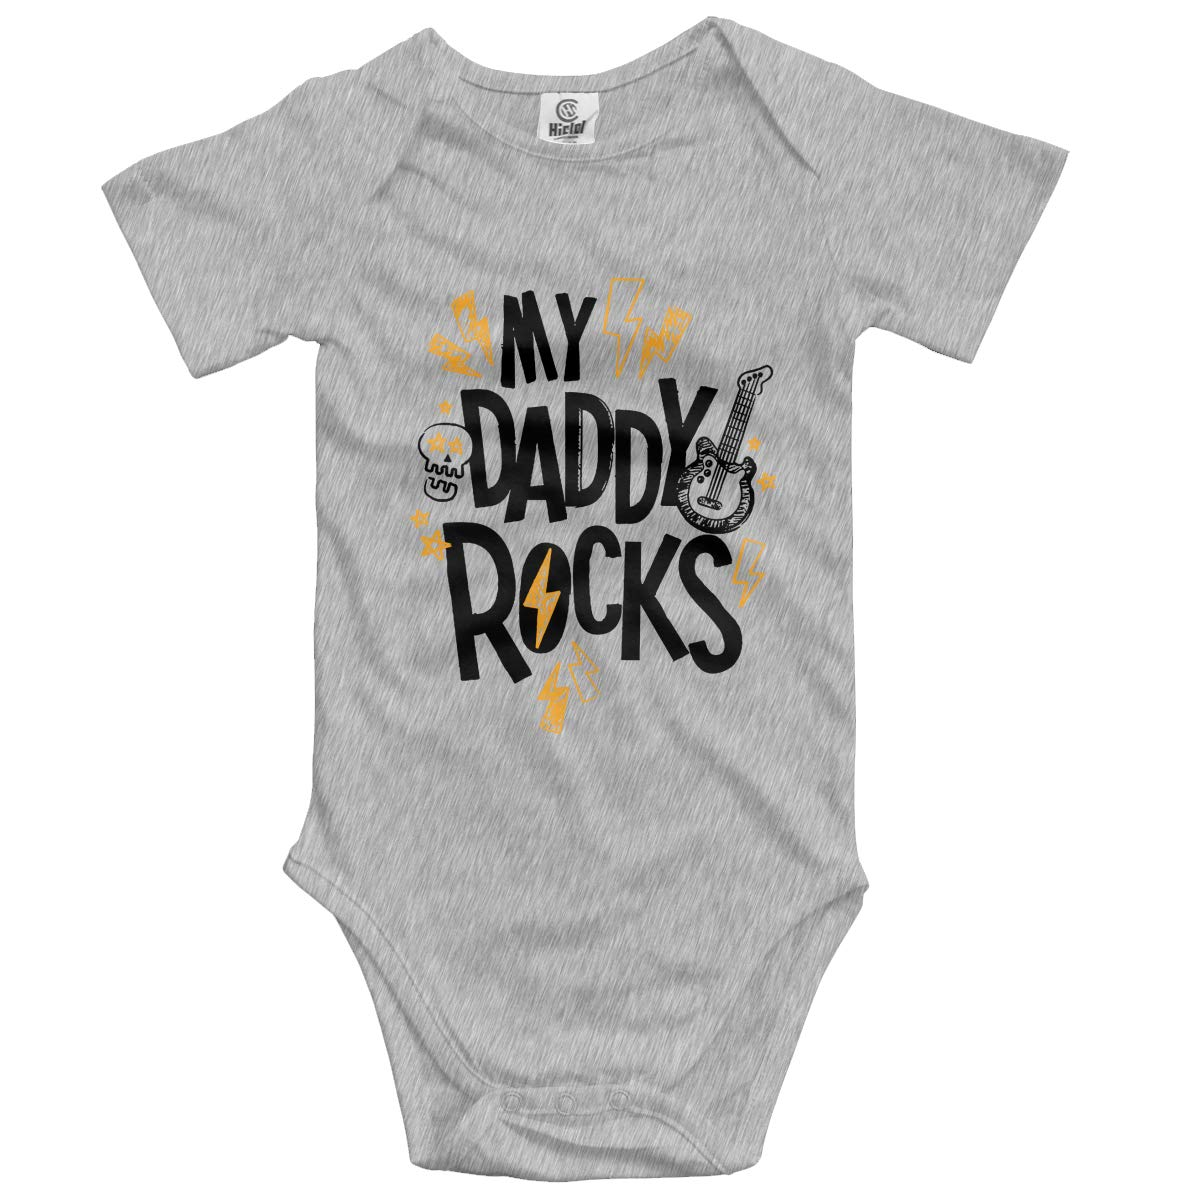 My Daddy Rocks Newbaby Baby Clothes Short Sleeve Jumpsuit Summer Onesie